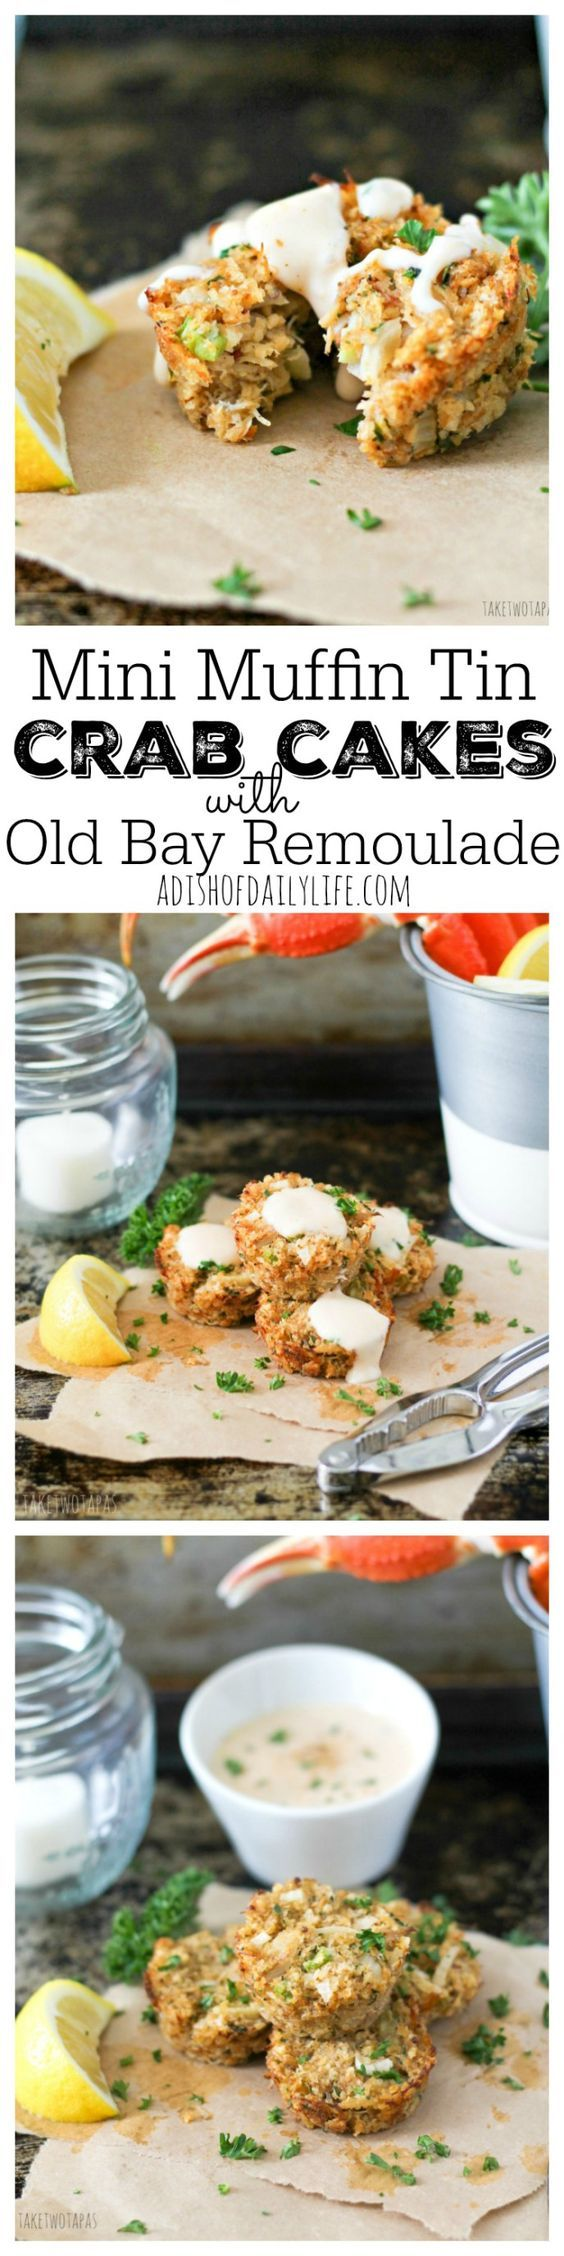 Elegant Side Dish For Crab Cakes